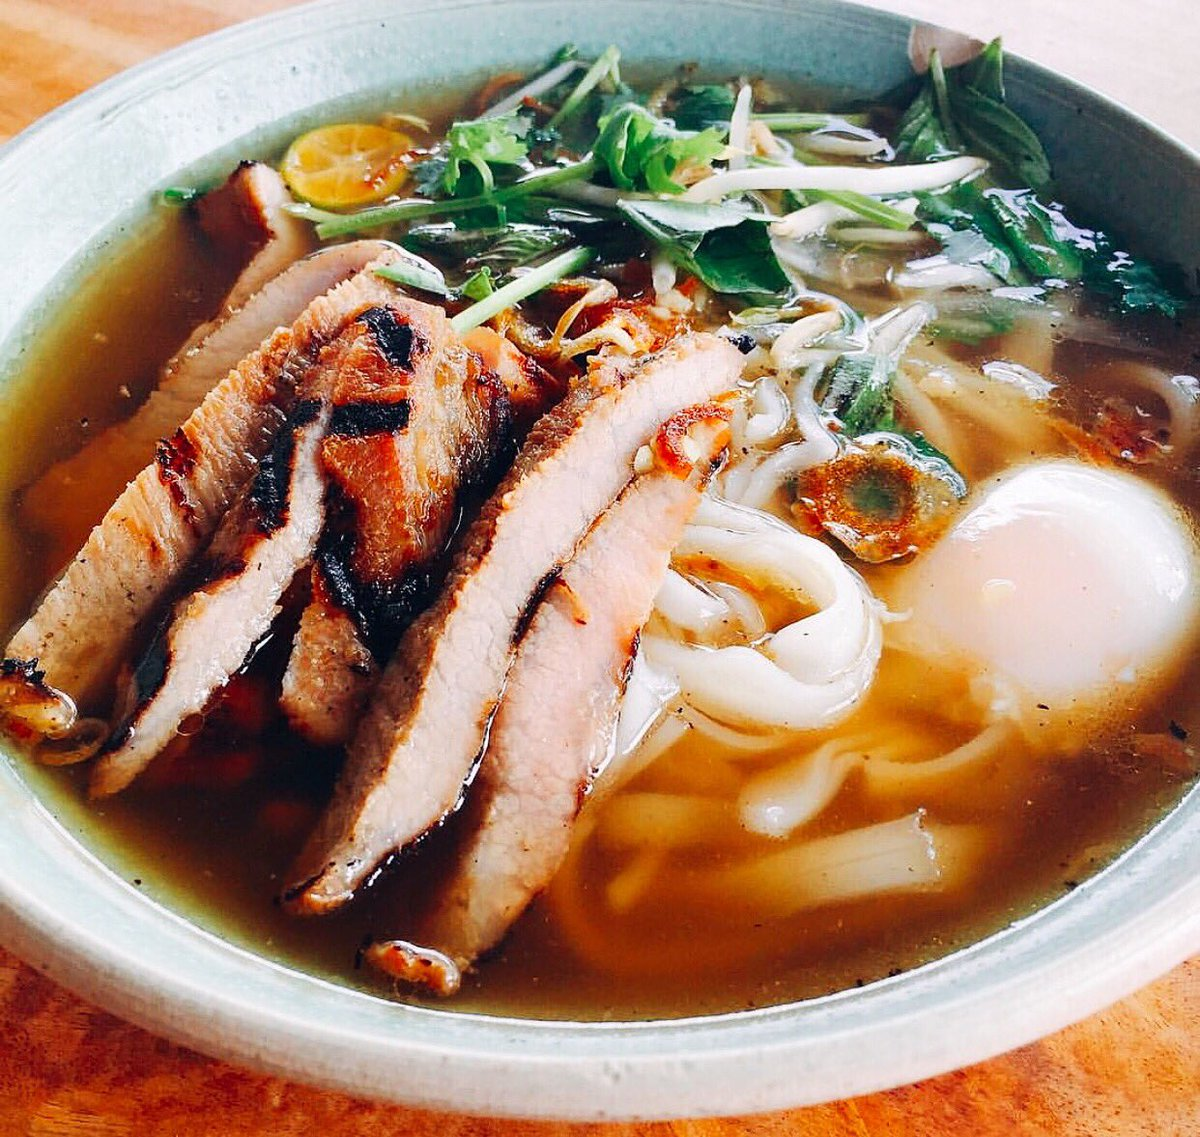 Pork Jowl Pho is one of our specials this week at The Pig & the Lady Farmers Market.